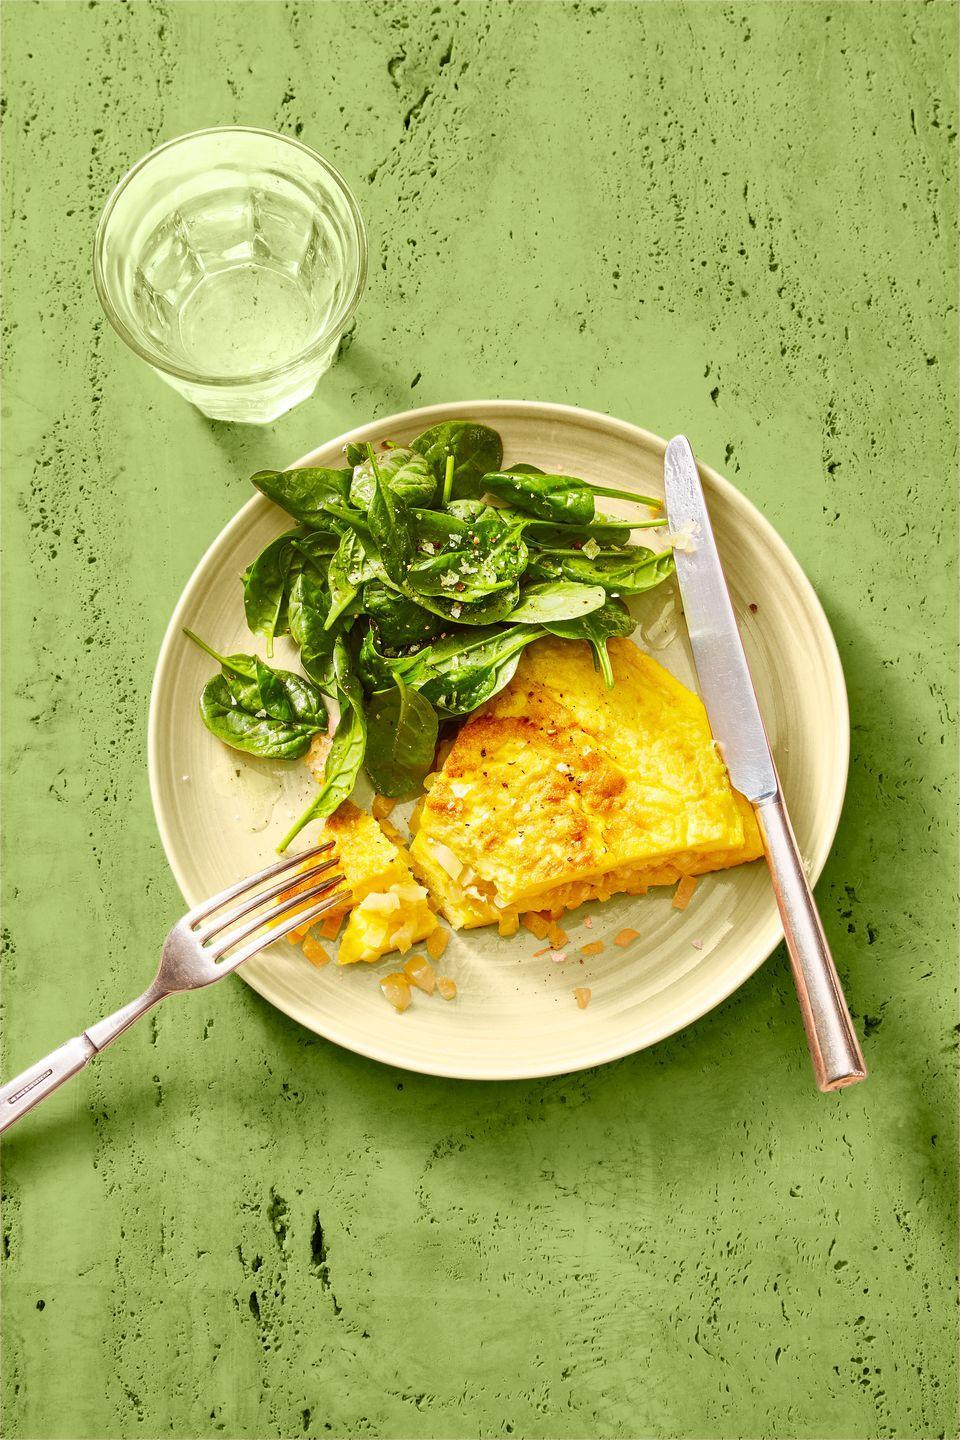 "<p>Sneak some spinach into your morning meal for a boost of nutrients to start your day off right.</p><p><em><a href=""https://www.goodhousekeeping.com/food-recipes/a35036897/classic-omelet-and-greens-recipe/"" rel=""nofollow noopener"" target=""_blank"" data-ylk=""slk:Get the recipe for Classic Omelet and Greens »"" class=""link rapid-noclick-resp"">Get the recipe for Classic Omelet and Greens »</a></em></p>"